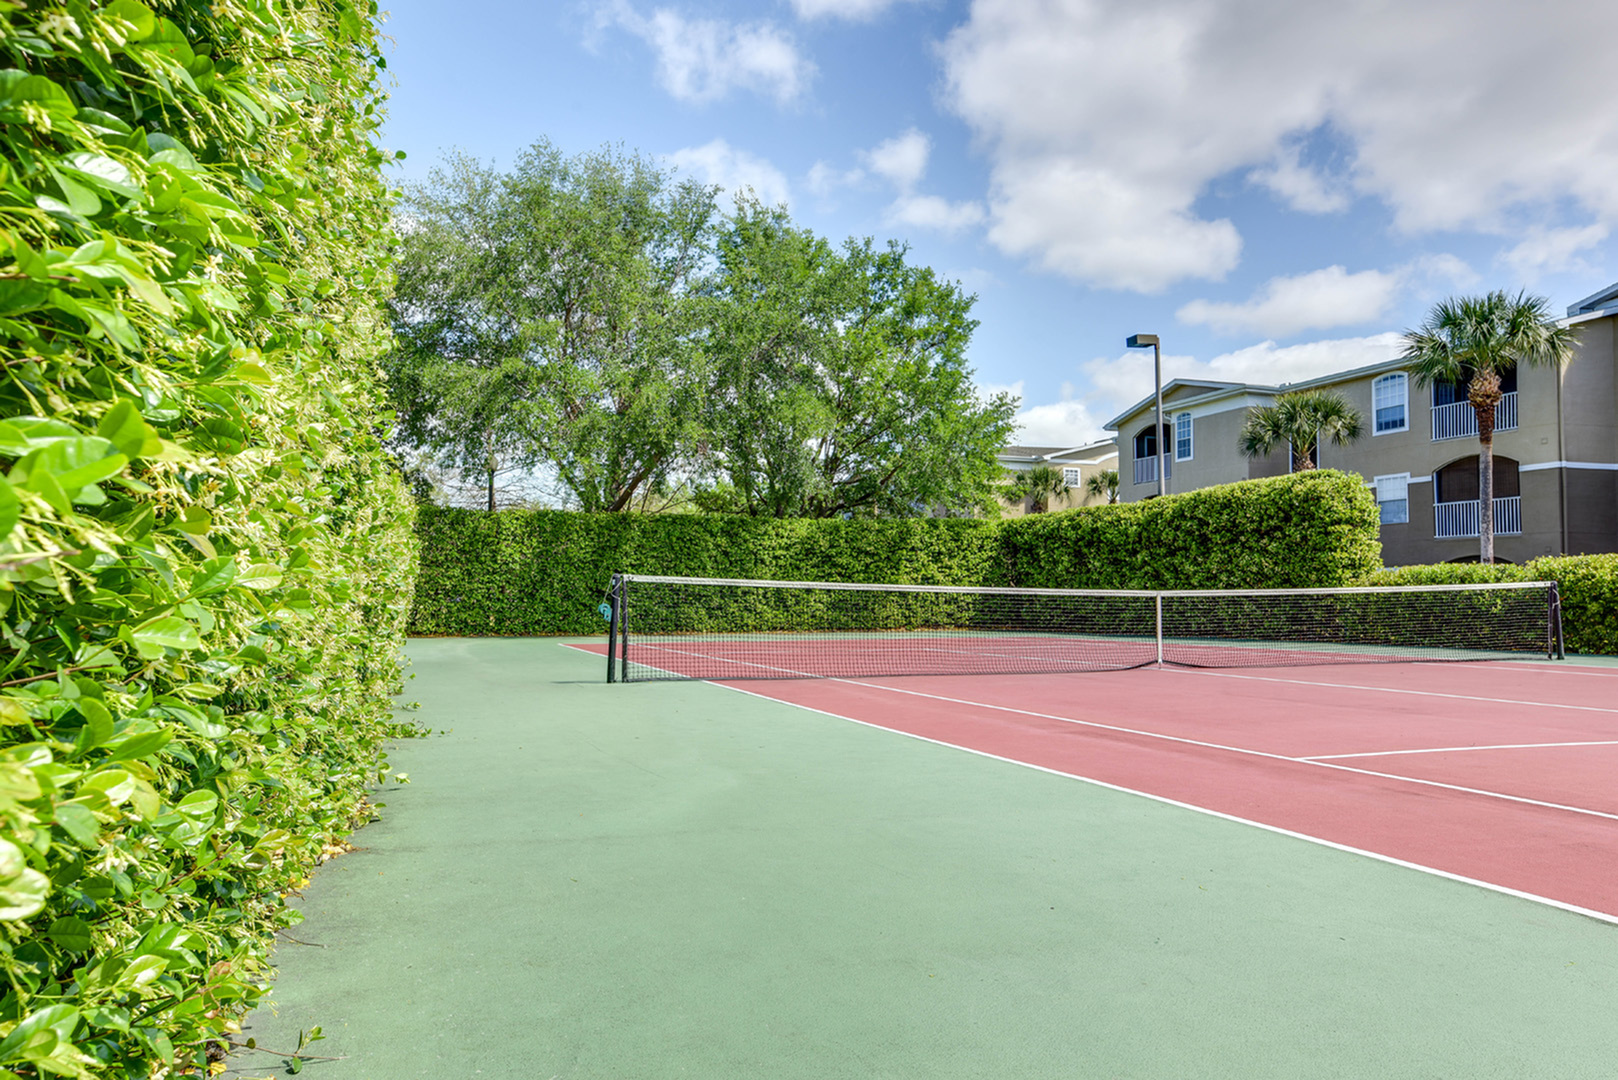 Tennis court surrounded by tall bushes.  Trees and building in background.